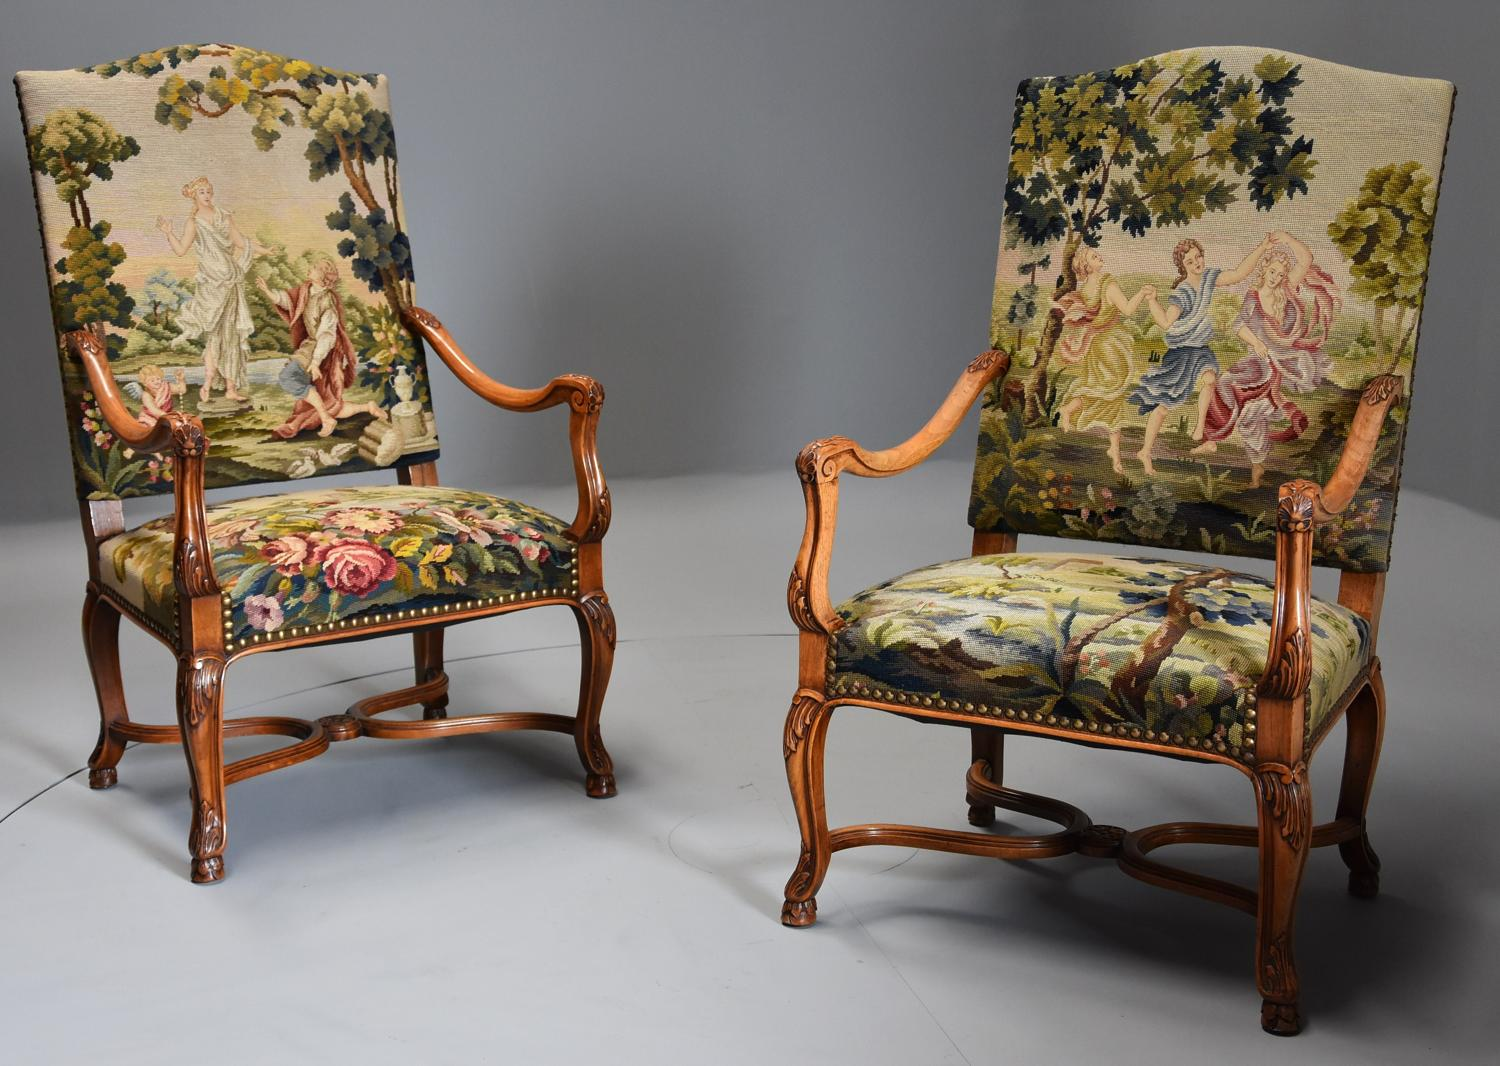 Pair of 19thc French walnut open armchairs with tapestry upholstery